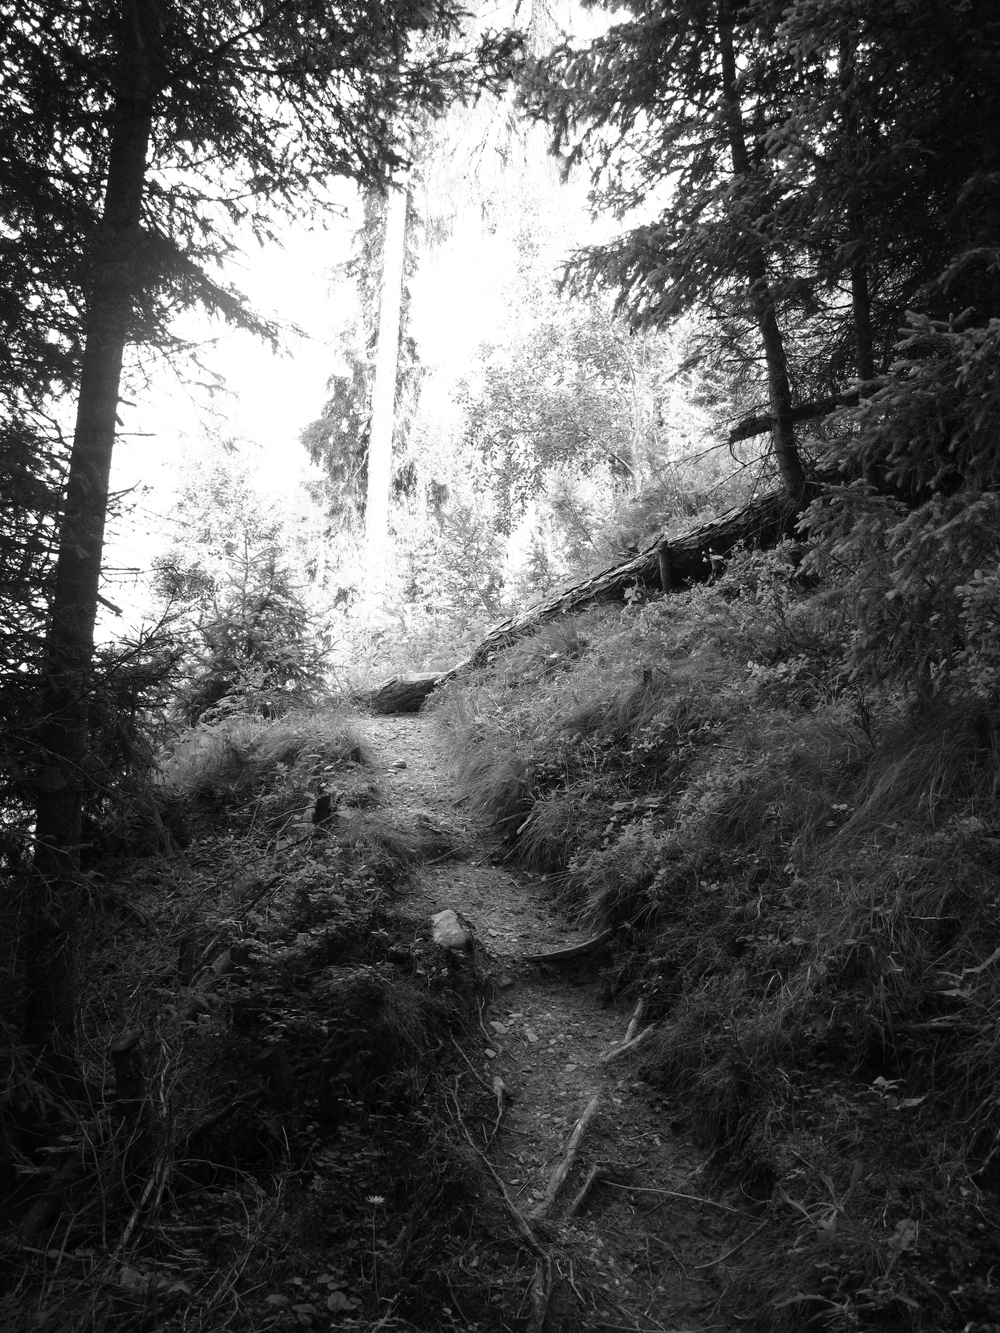 Pathway through the trees up to a waterfall in Austria, in black and white.